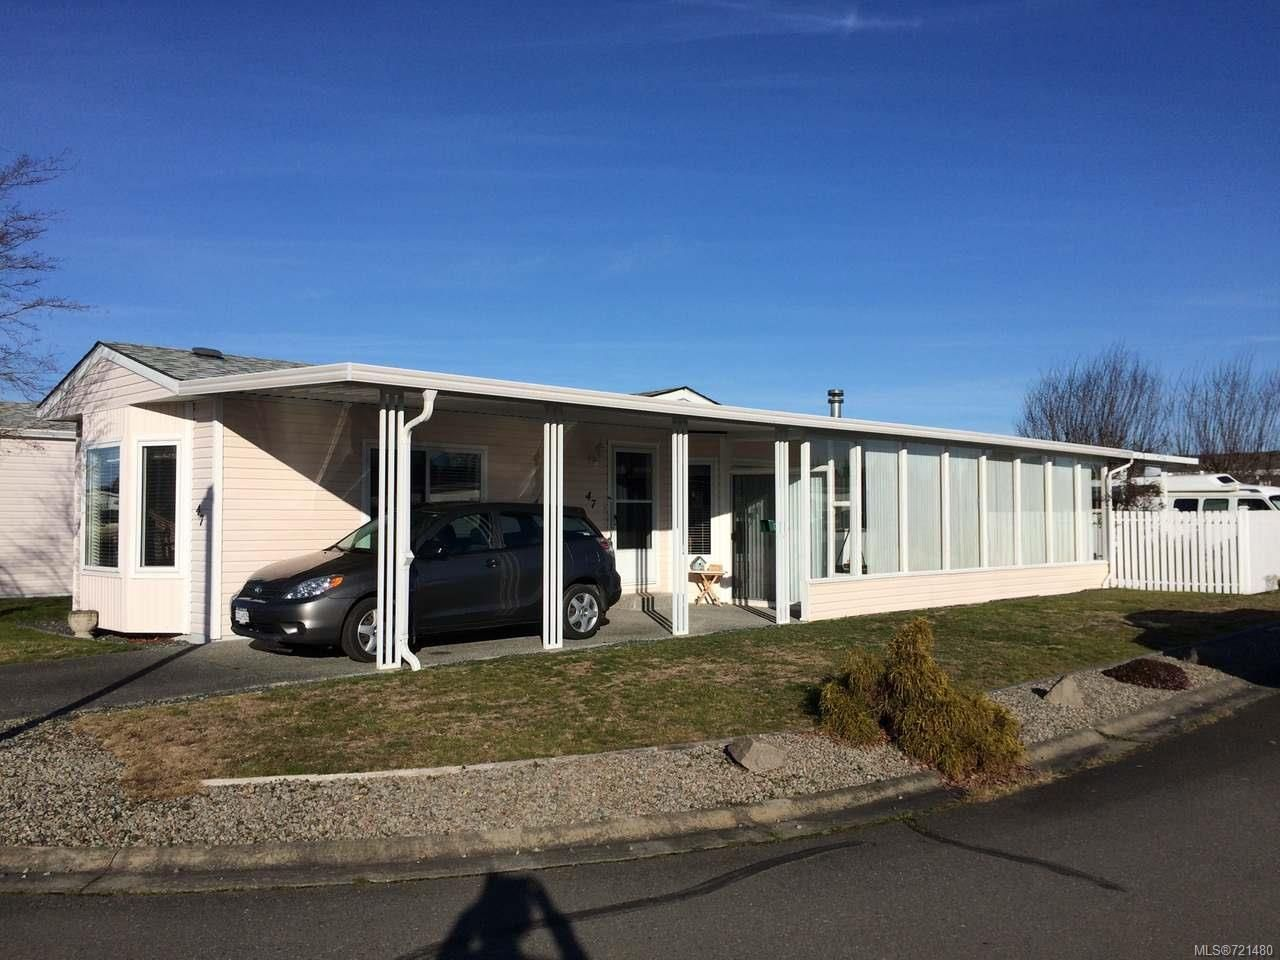 Main Photo: 47 450 E STANFORD E Avenue in PARKSVILLE: PQ Parksville Manufactured Home for sale (Parksville/Qualicum)  : MLS®# 721480